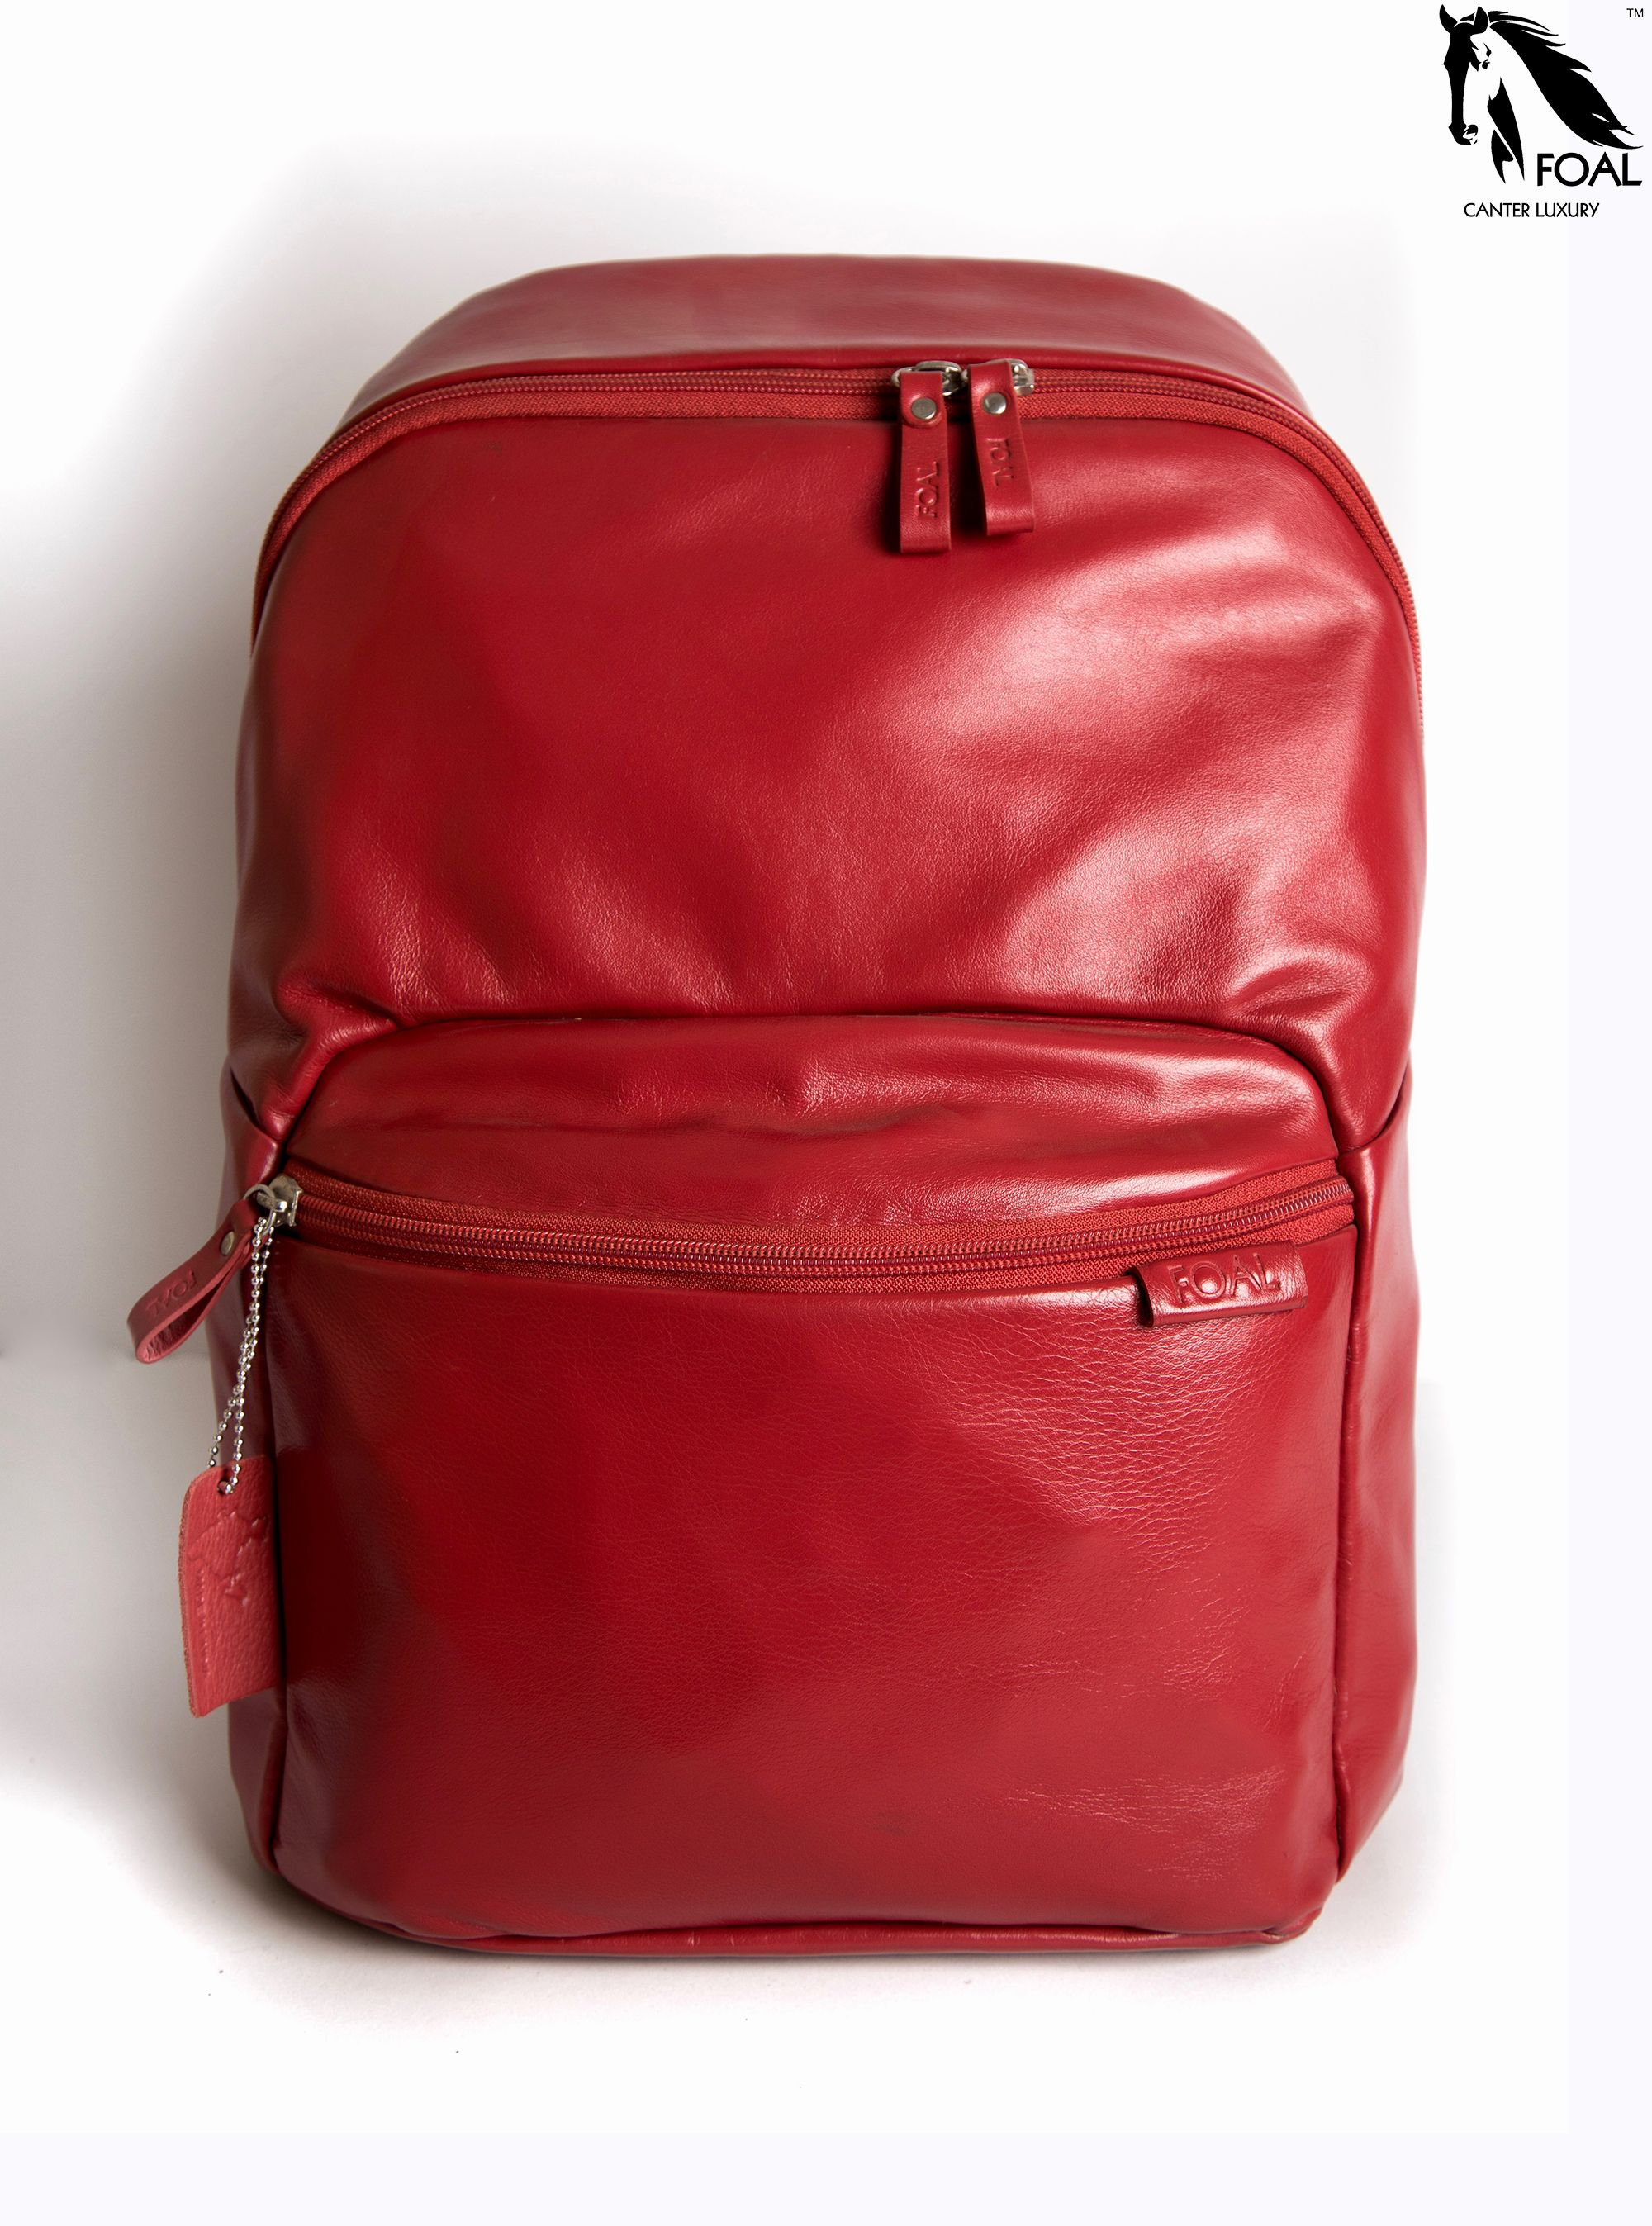 ee4d70d0c8 From college to tuition to an outdoor picnic spot. Name  Bestie Model no   UB1D Type  Unisex Backpack Leather  Napa Colour  Shiny Red ...